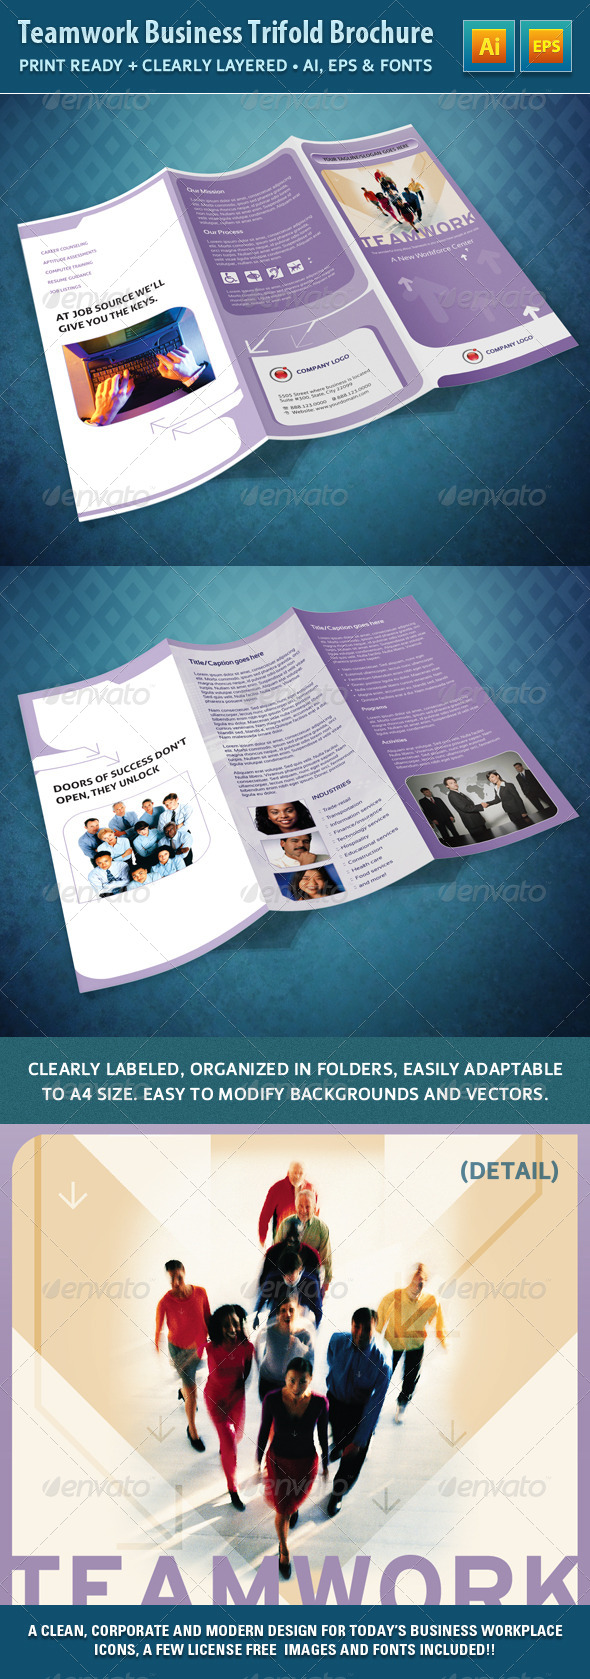 GraphicRiver Teamwork Business Trifold Brochure 4574460